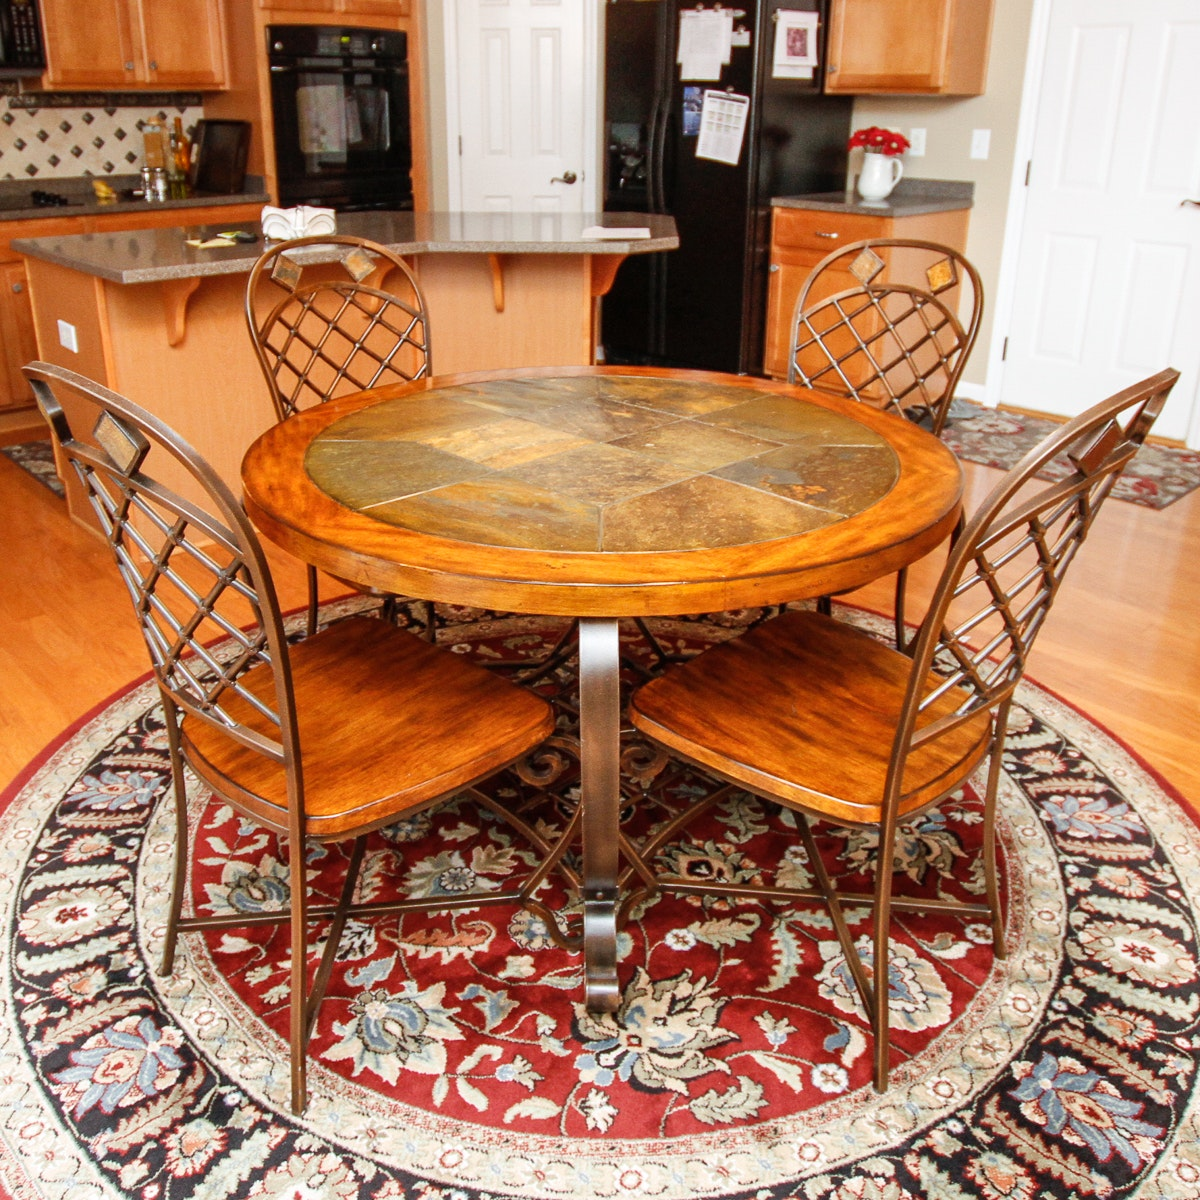 Tile and Walnut Topped Table and Chairs